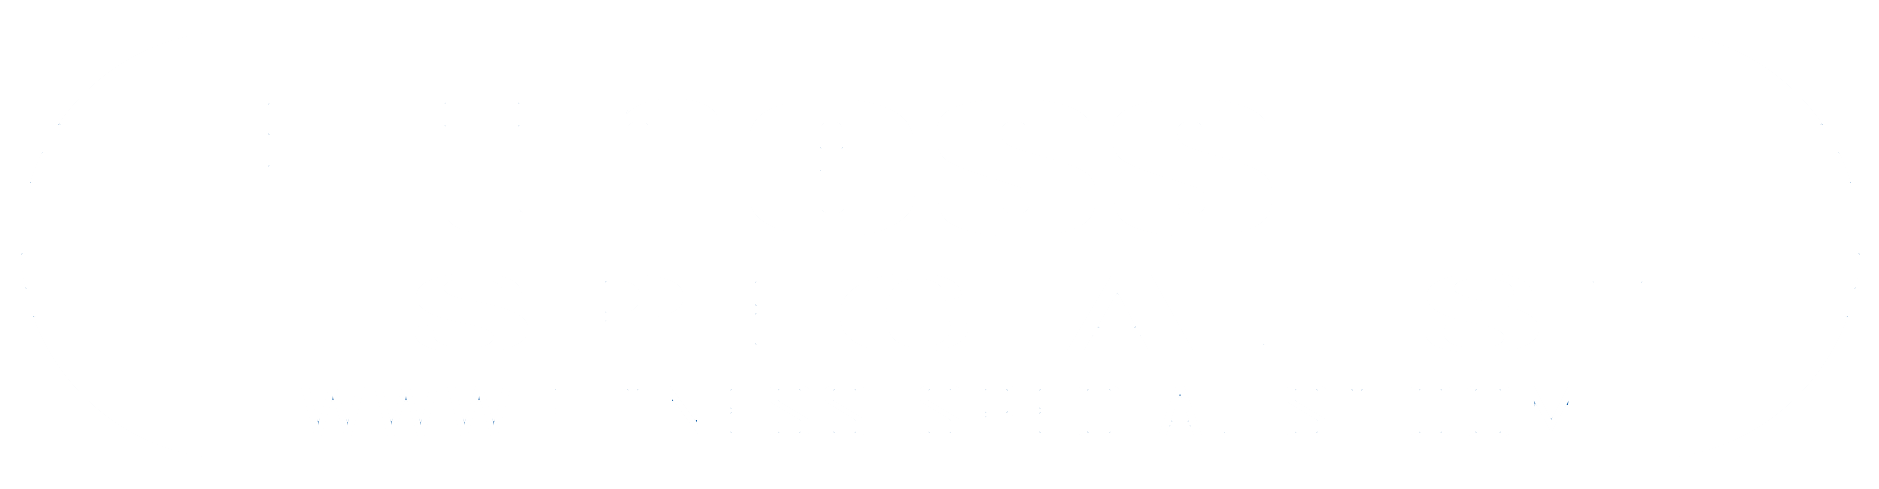 The Fitness Specialist